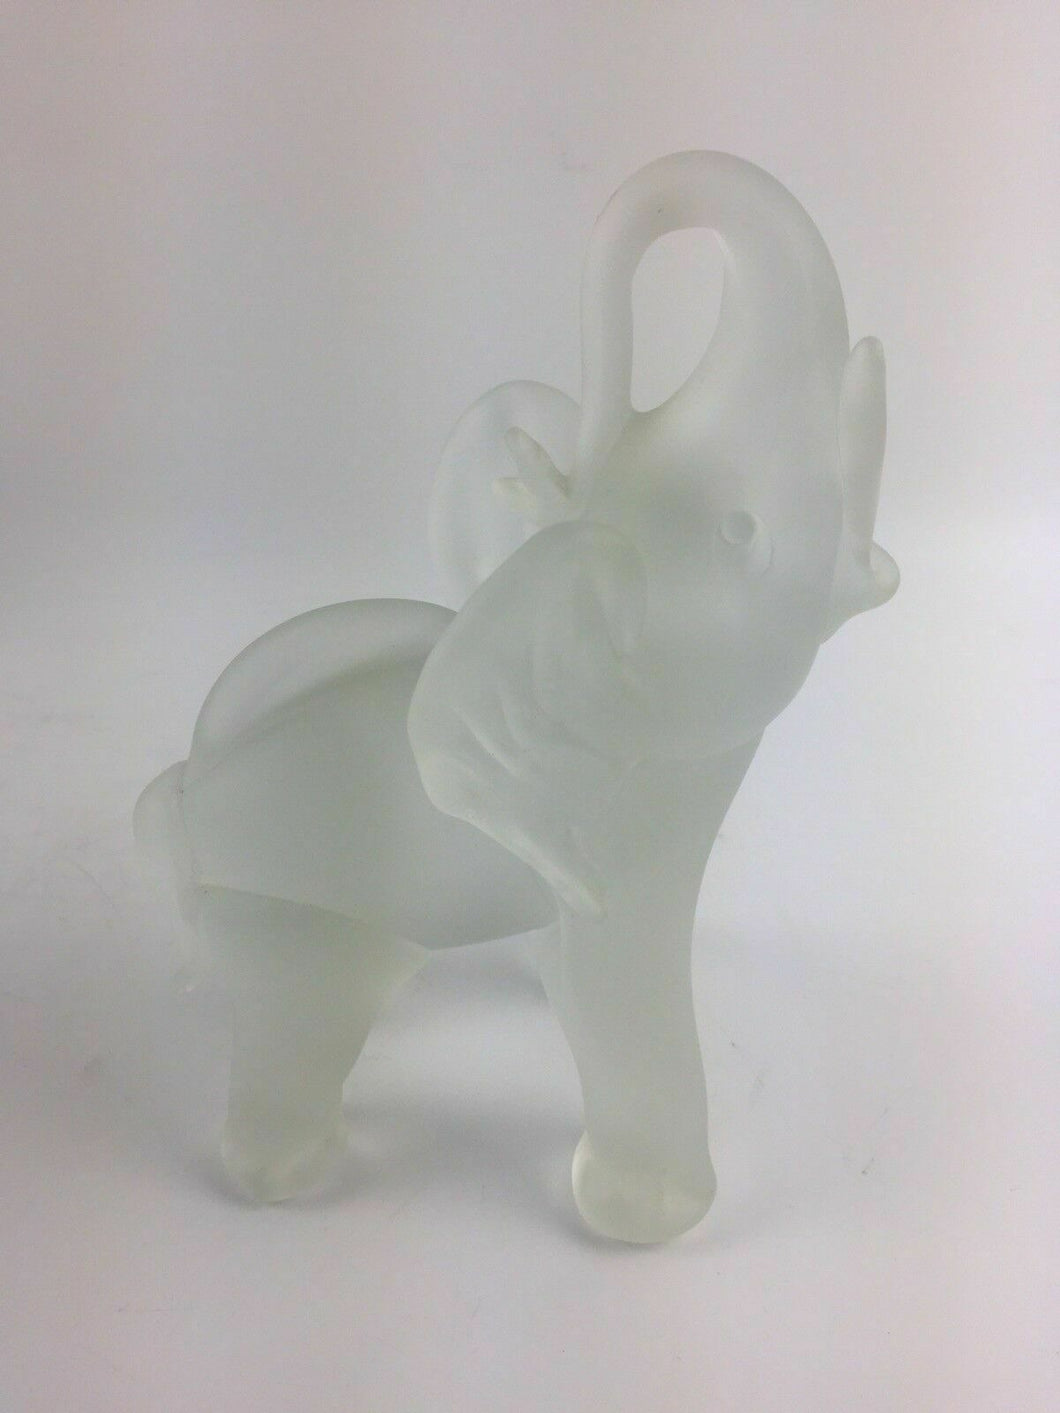 Vintage Frosted Elephant Figurine - lot 1334